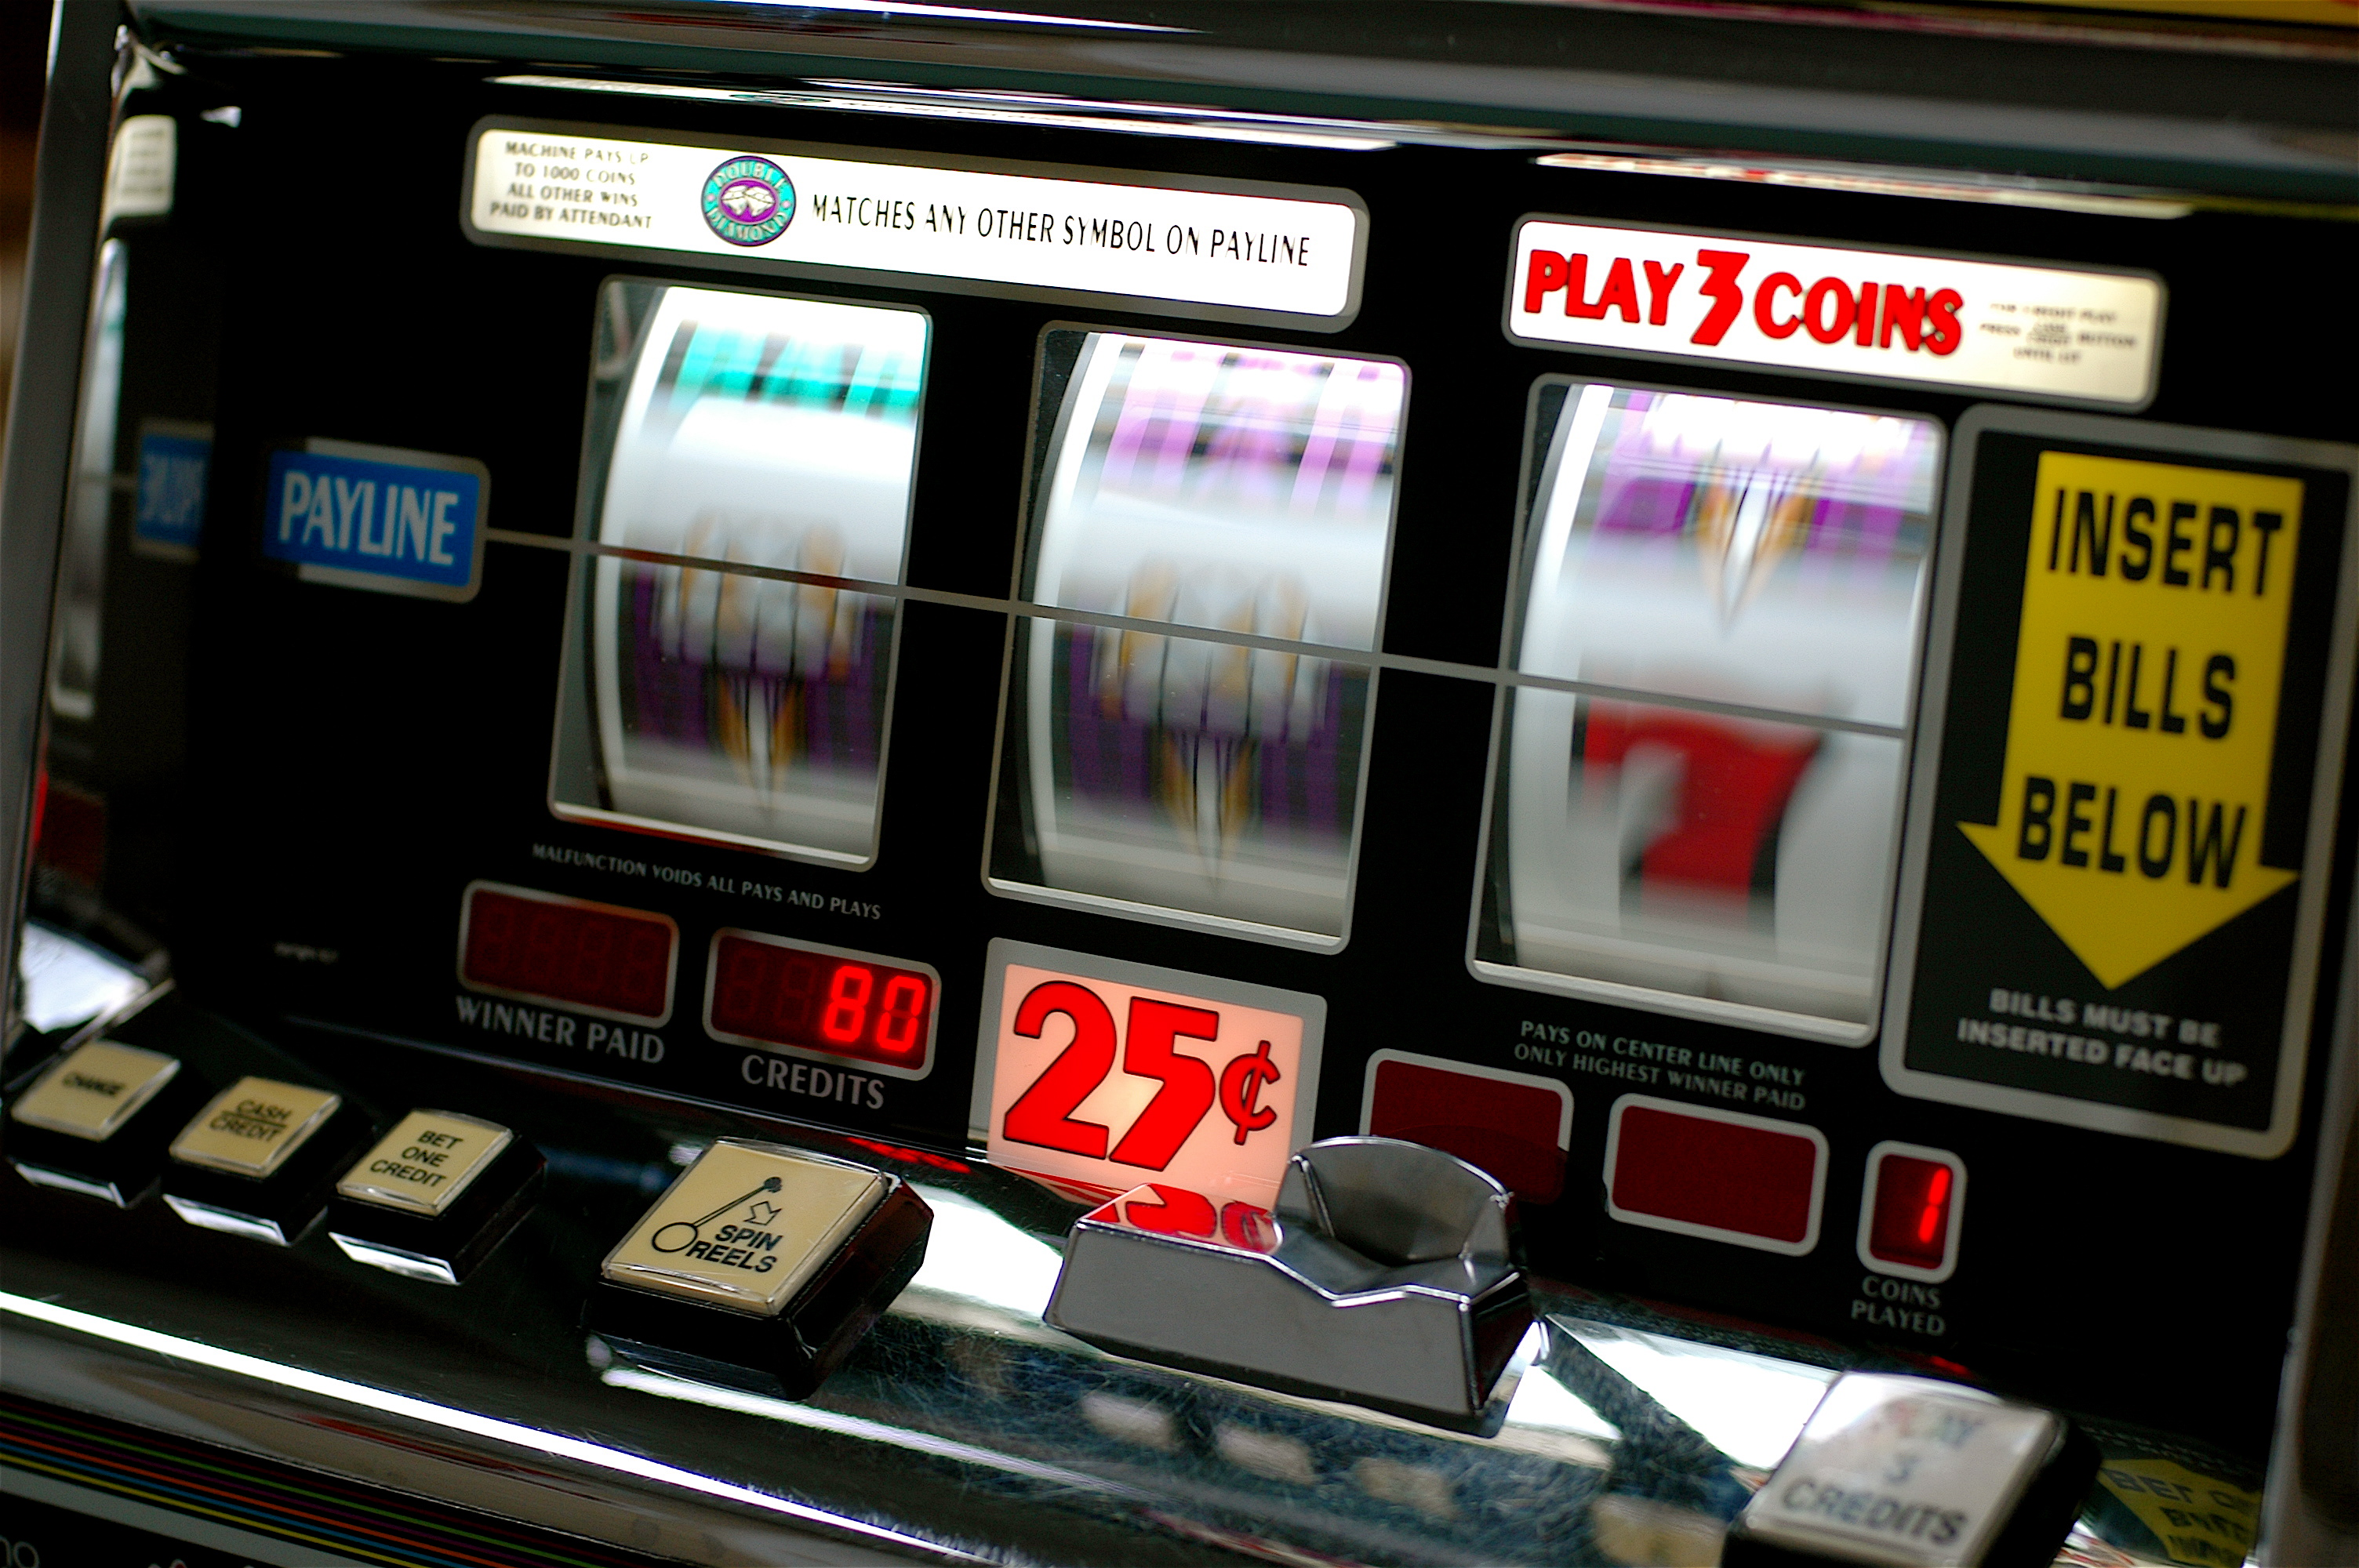 Key To Winning Slot Machines